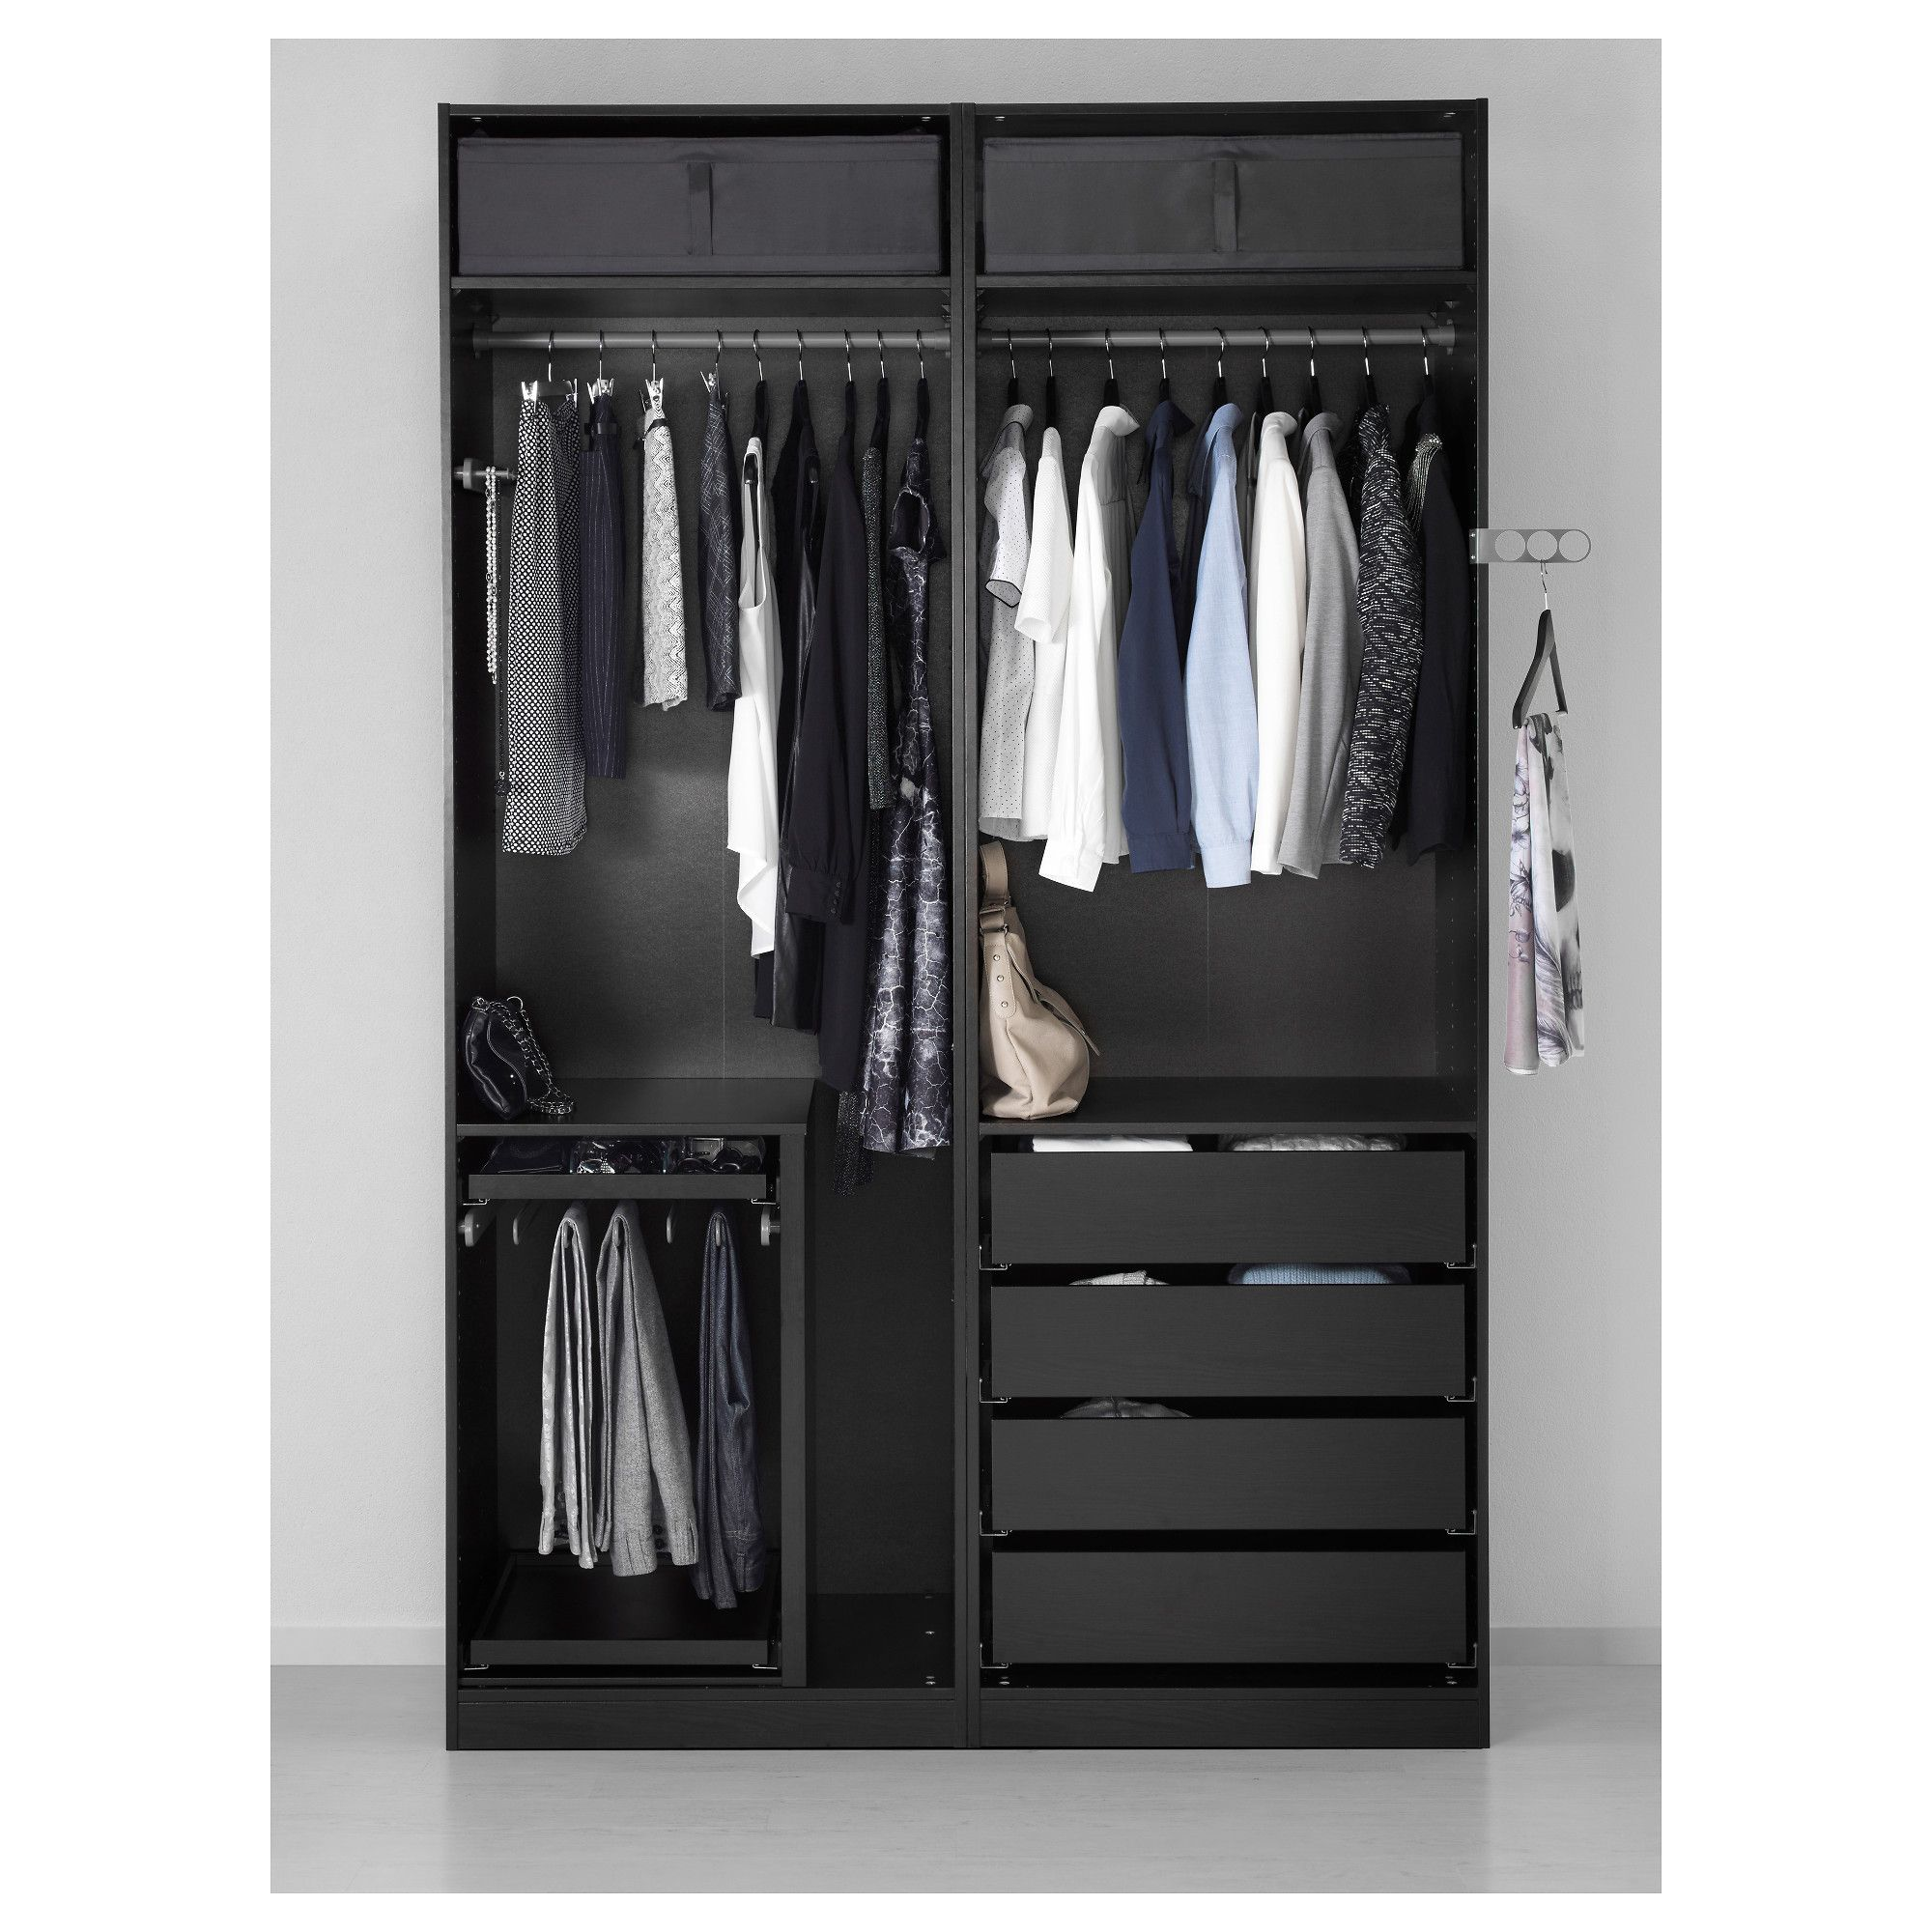 Furniture and Home Furnishings Pax wardrobe, Glass